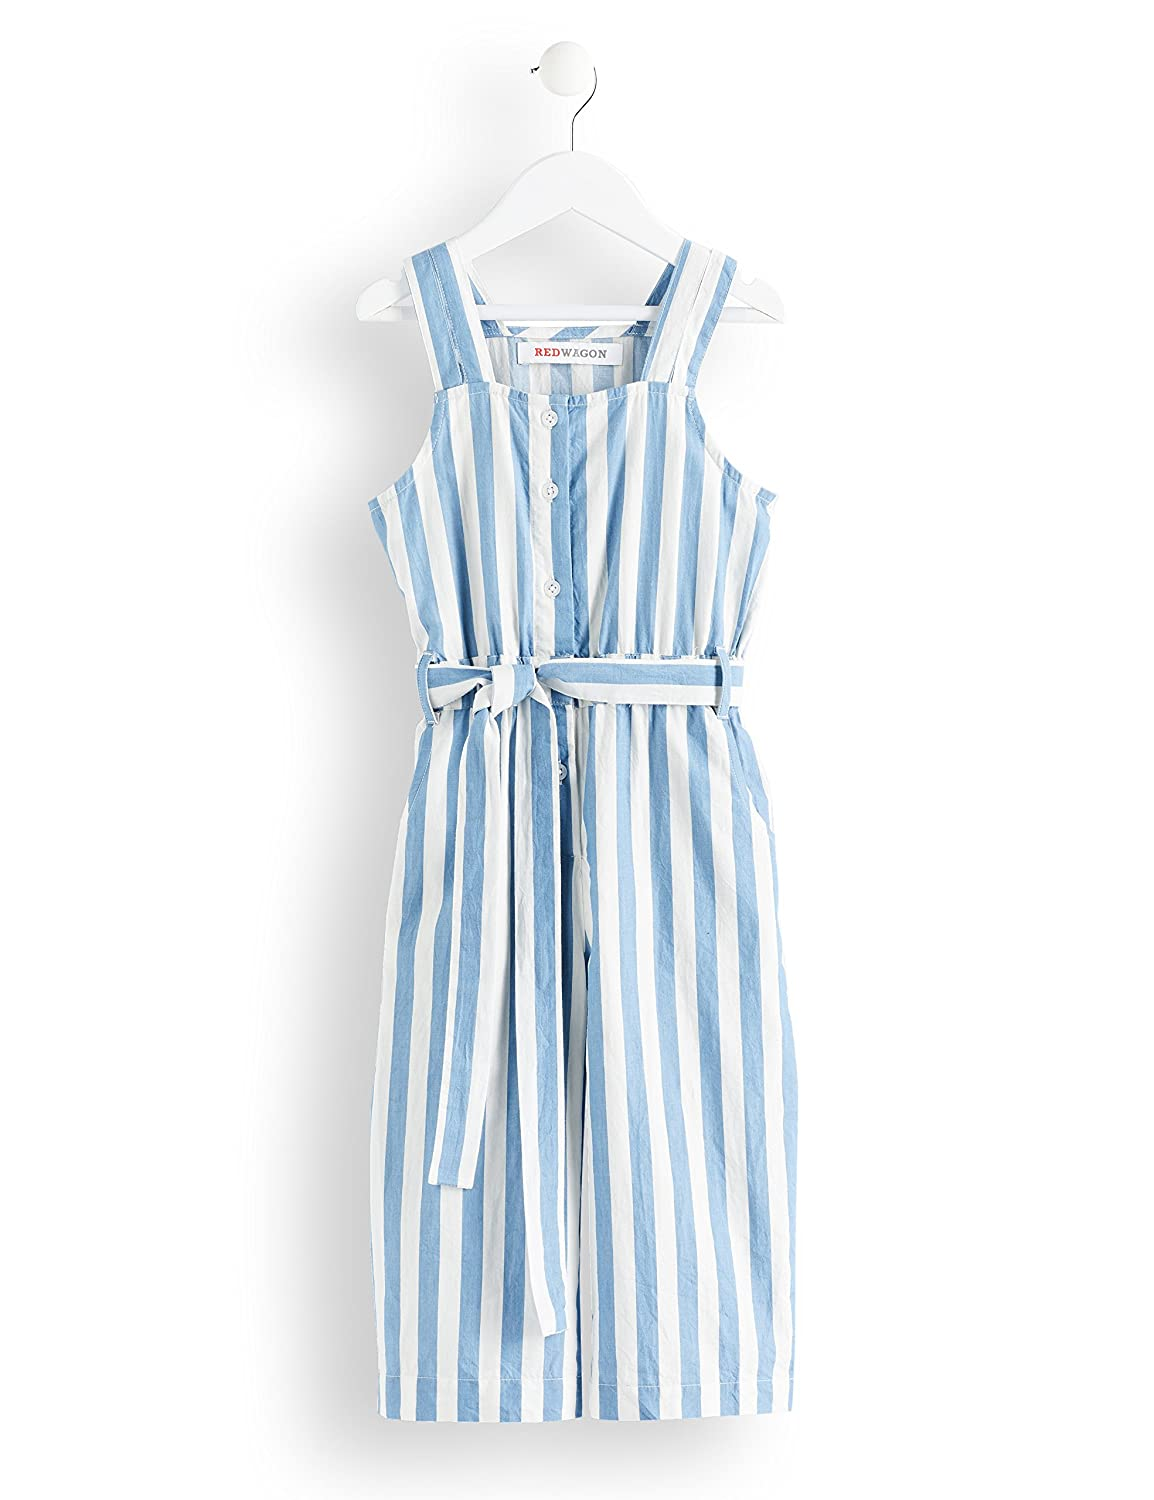 RED WAGON Girls Chambray Waist Tie Playsuit